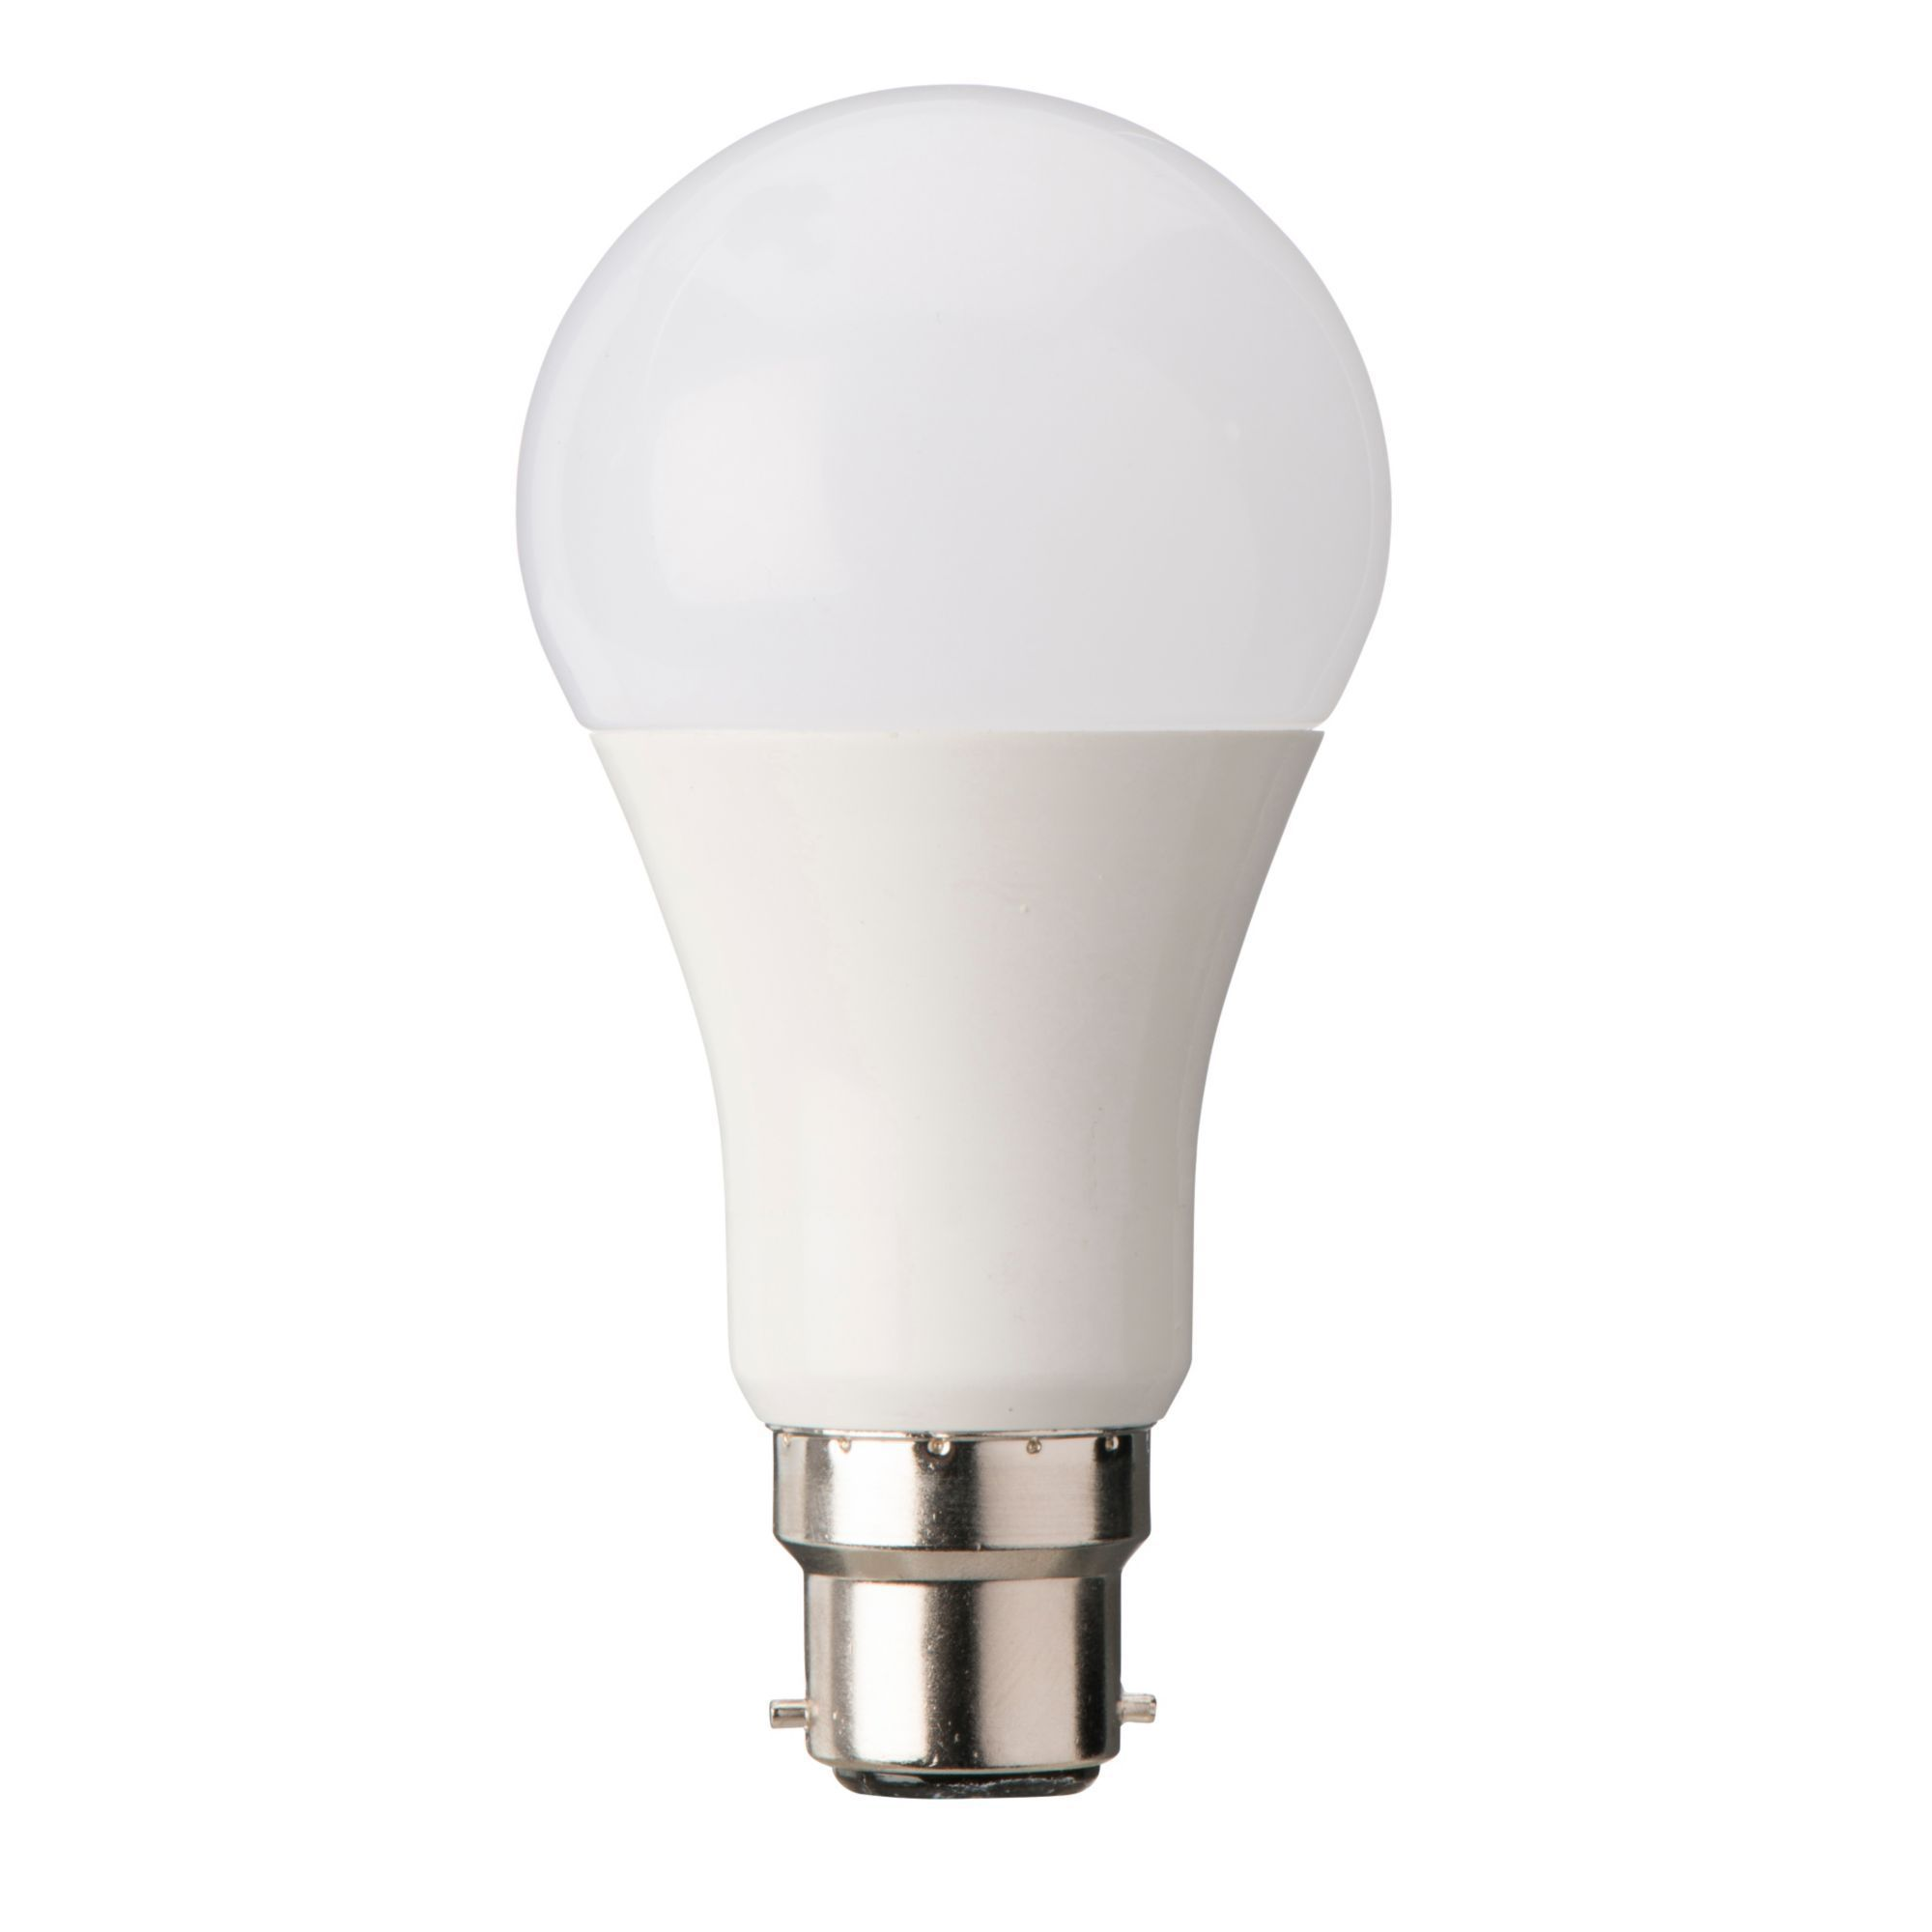 Led Cabinet Lighting Screwfix: Diall B22 1521lm LED Classic Light Bulb